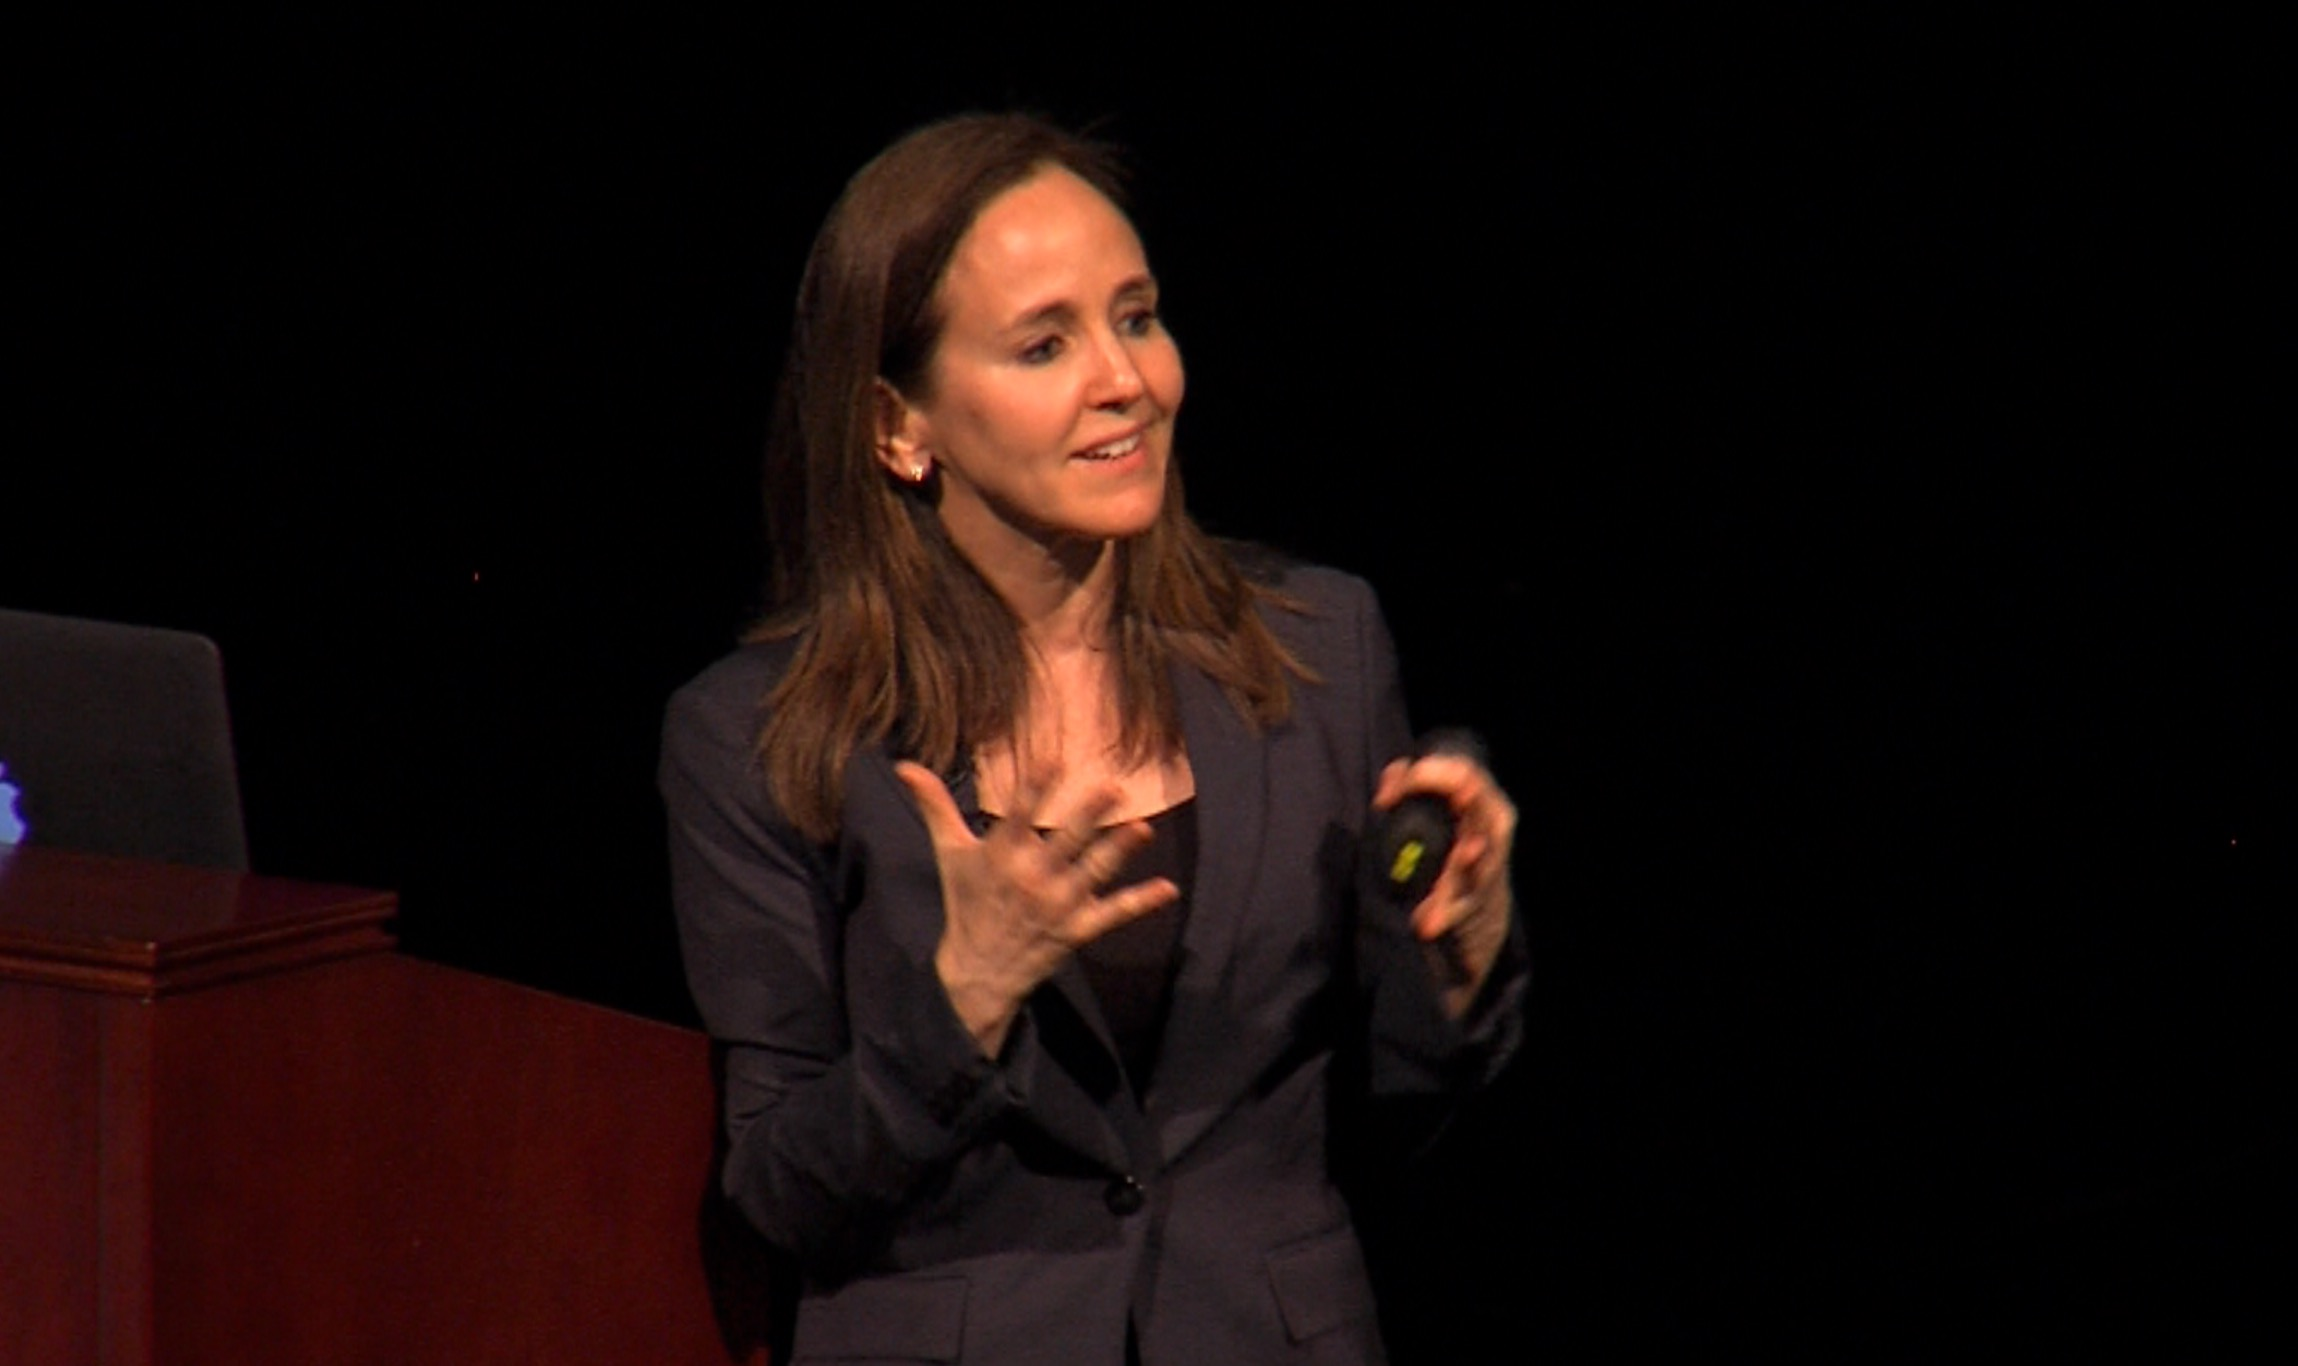 Dr. Dana Suskind on stage at University of Chicago